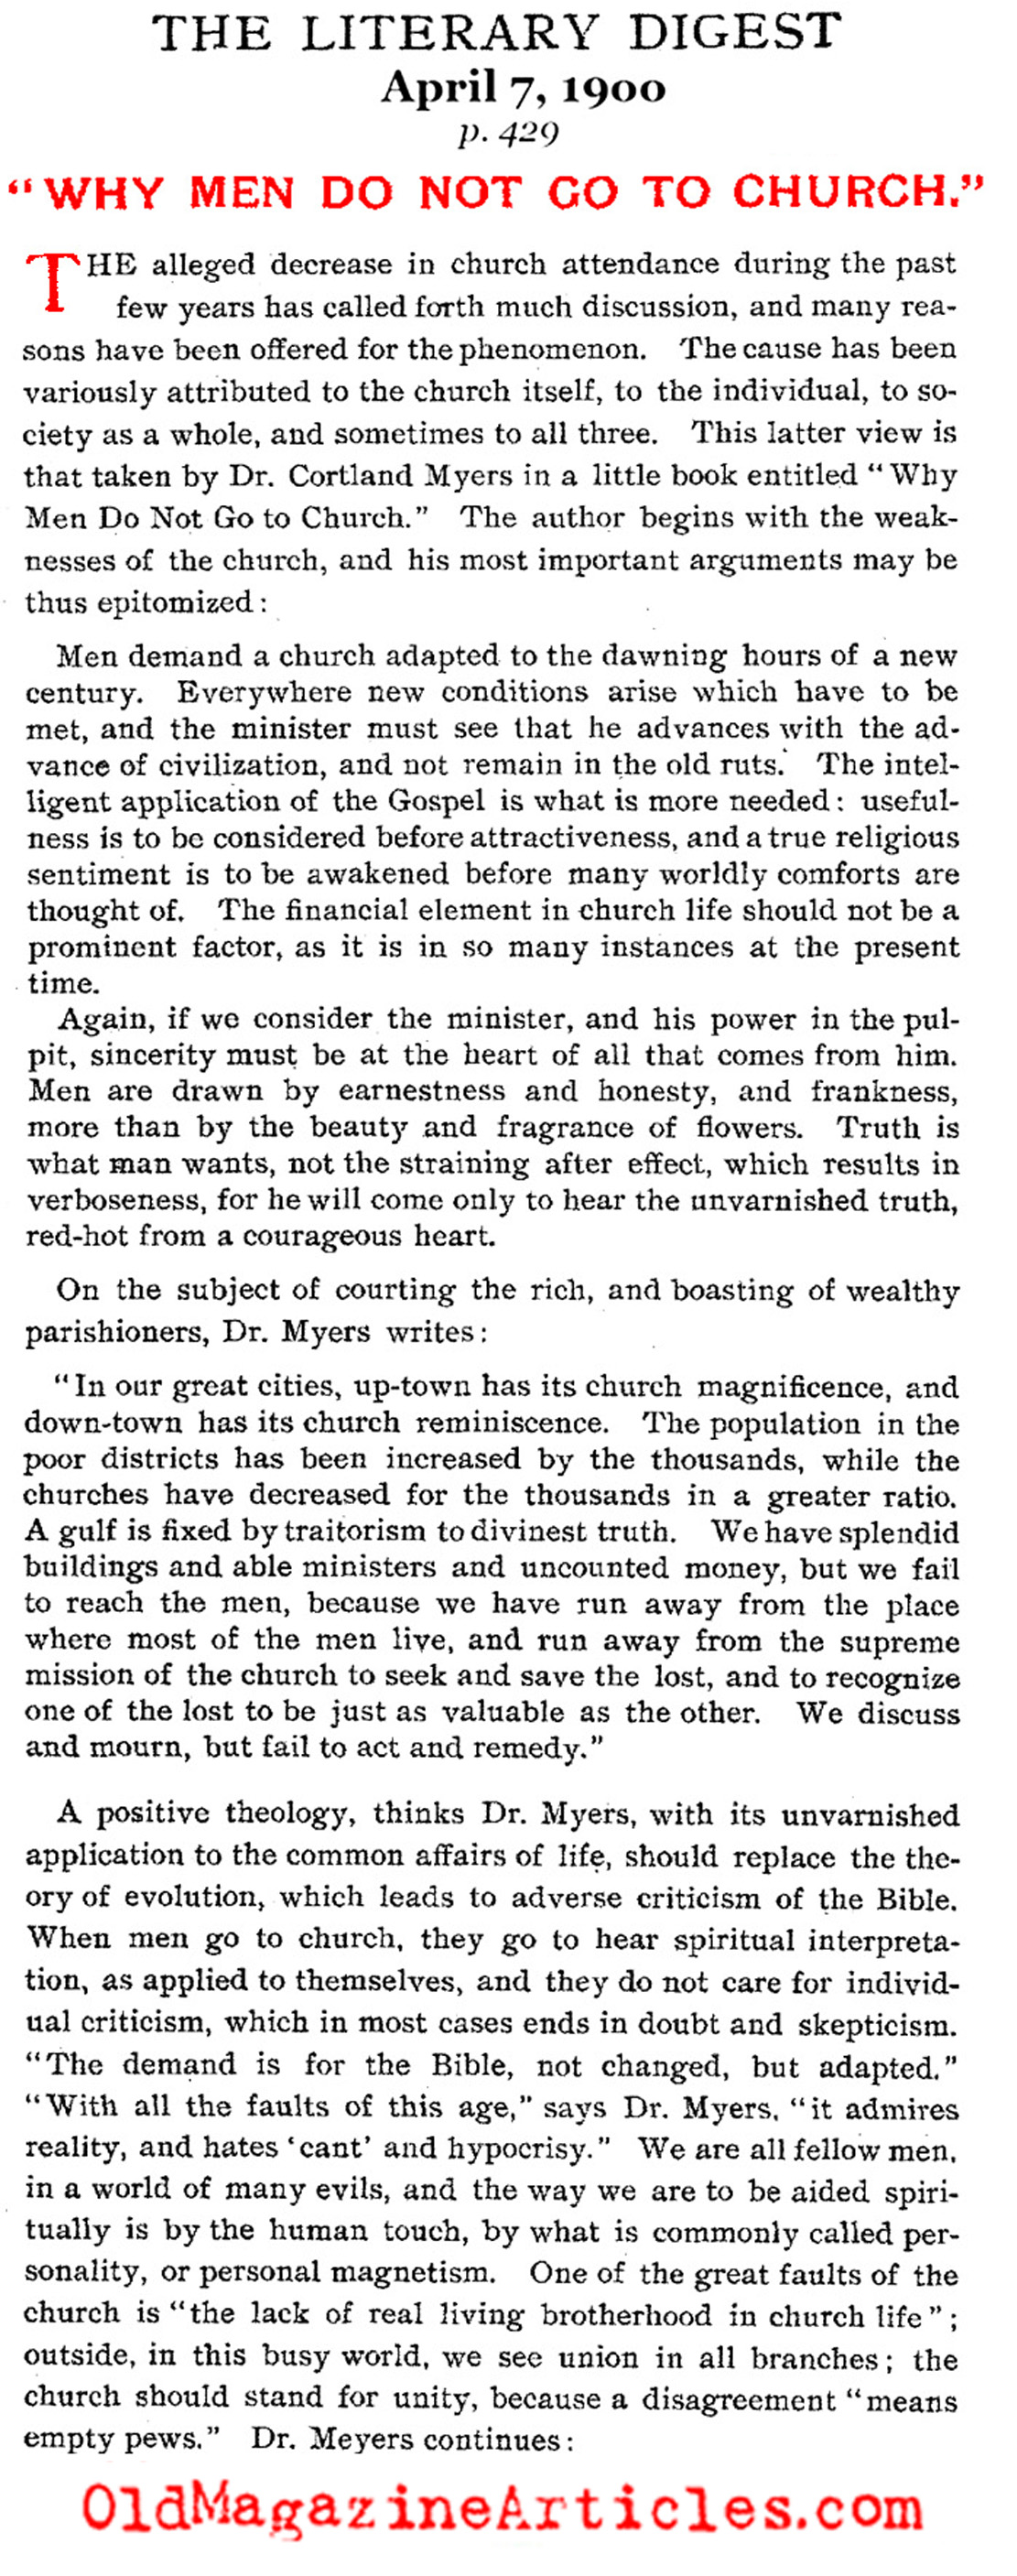 Why Men Don't Like to Go to Church (Literary Digest, 1900)